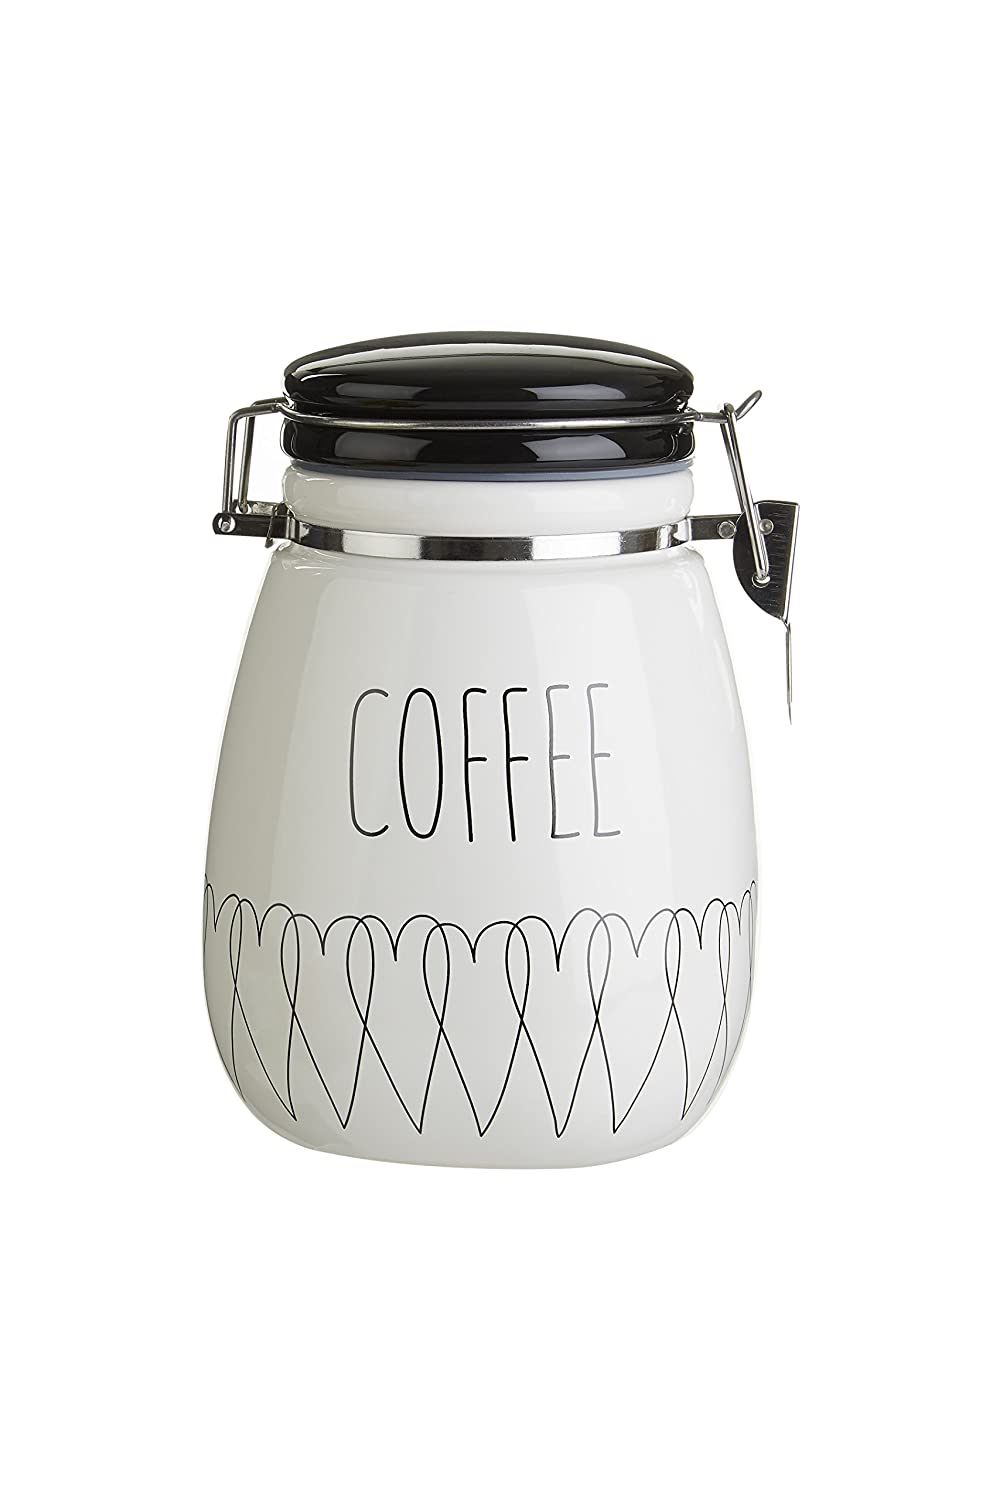 Premier Housewares Heartlines Coffee Canister, Dolomite - White by Premier Housewares 0722915